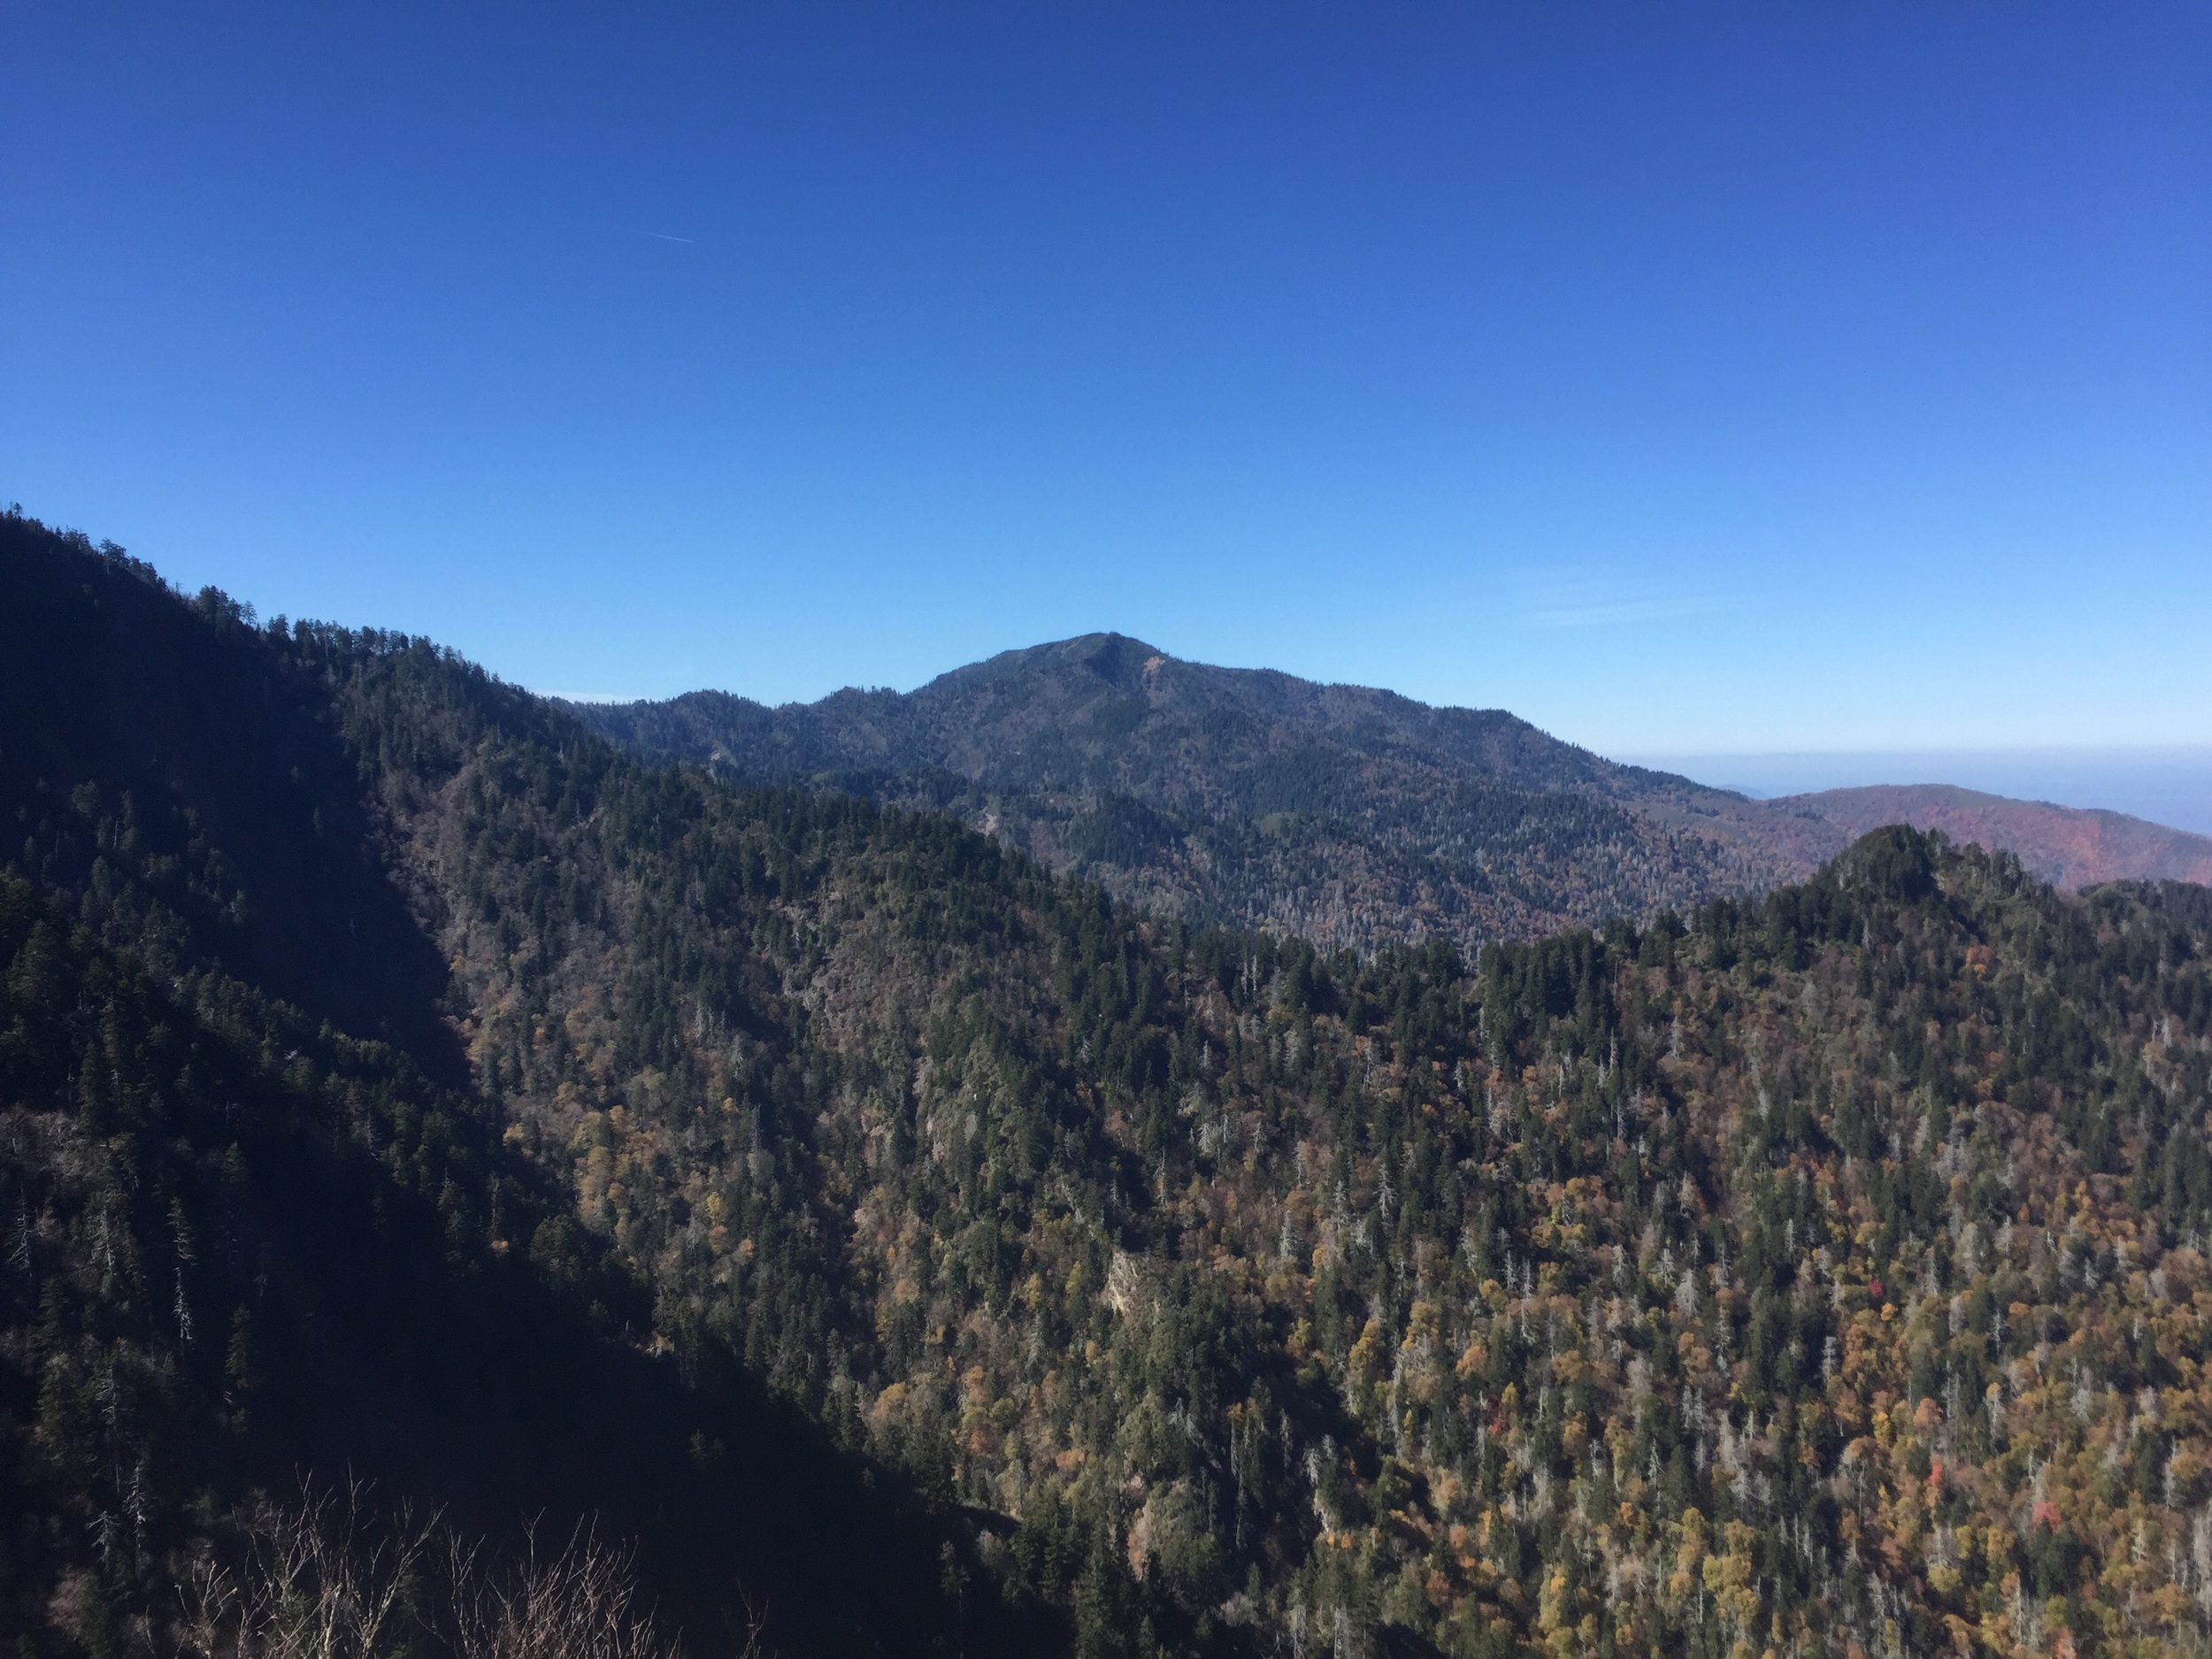 Mount LeConte from Charlie's Bunion